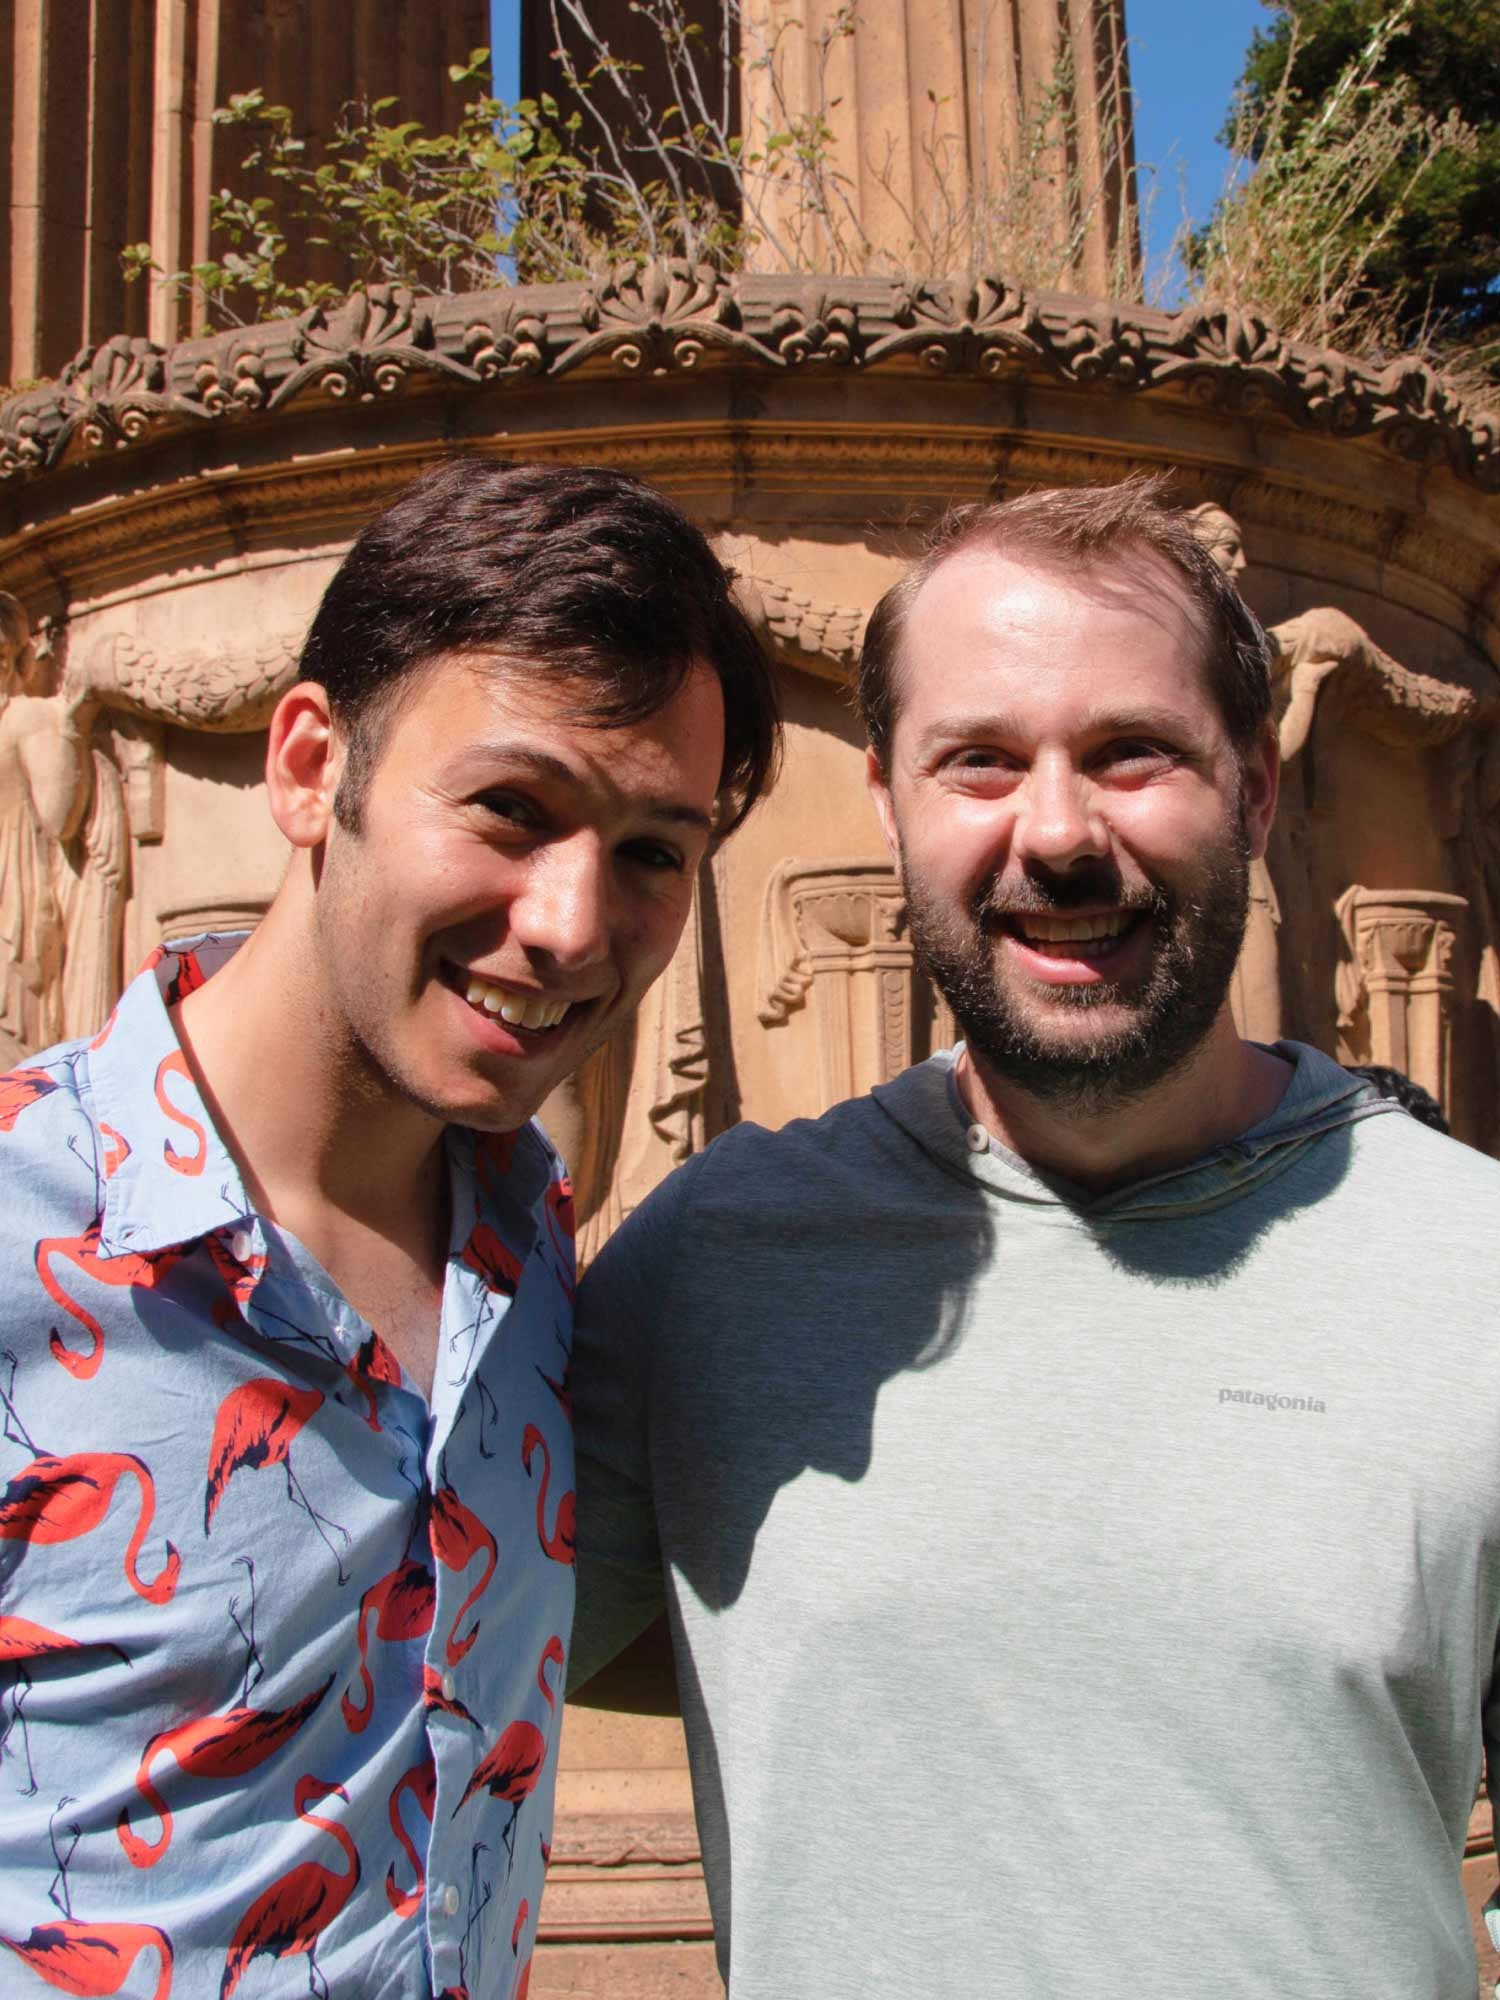 Two Virtans smiling in front of the Palace of Fine Arts in San Francisco